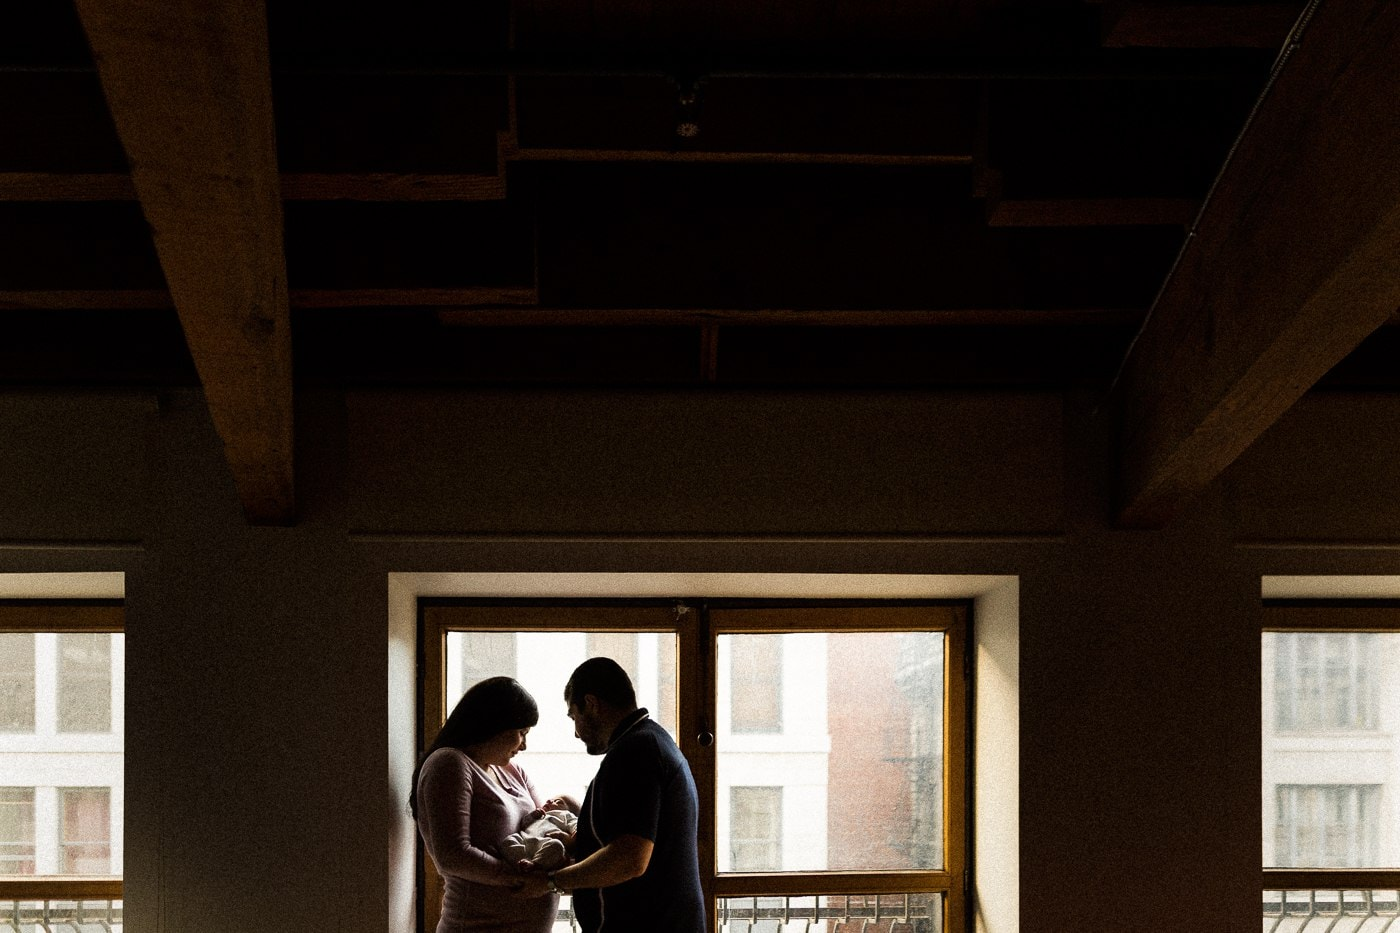 silhouette parents holding baby by window